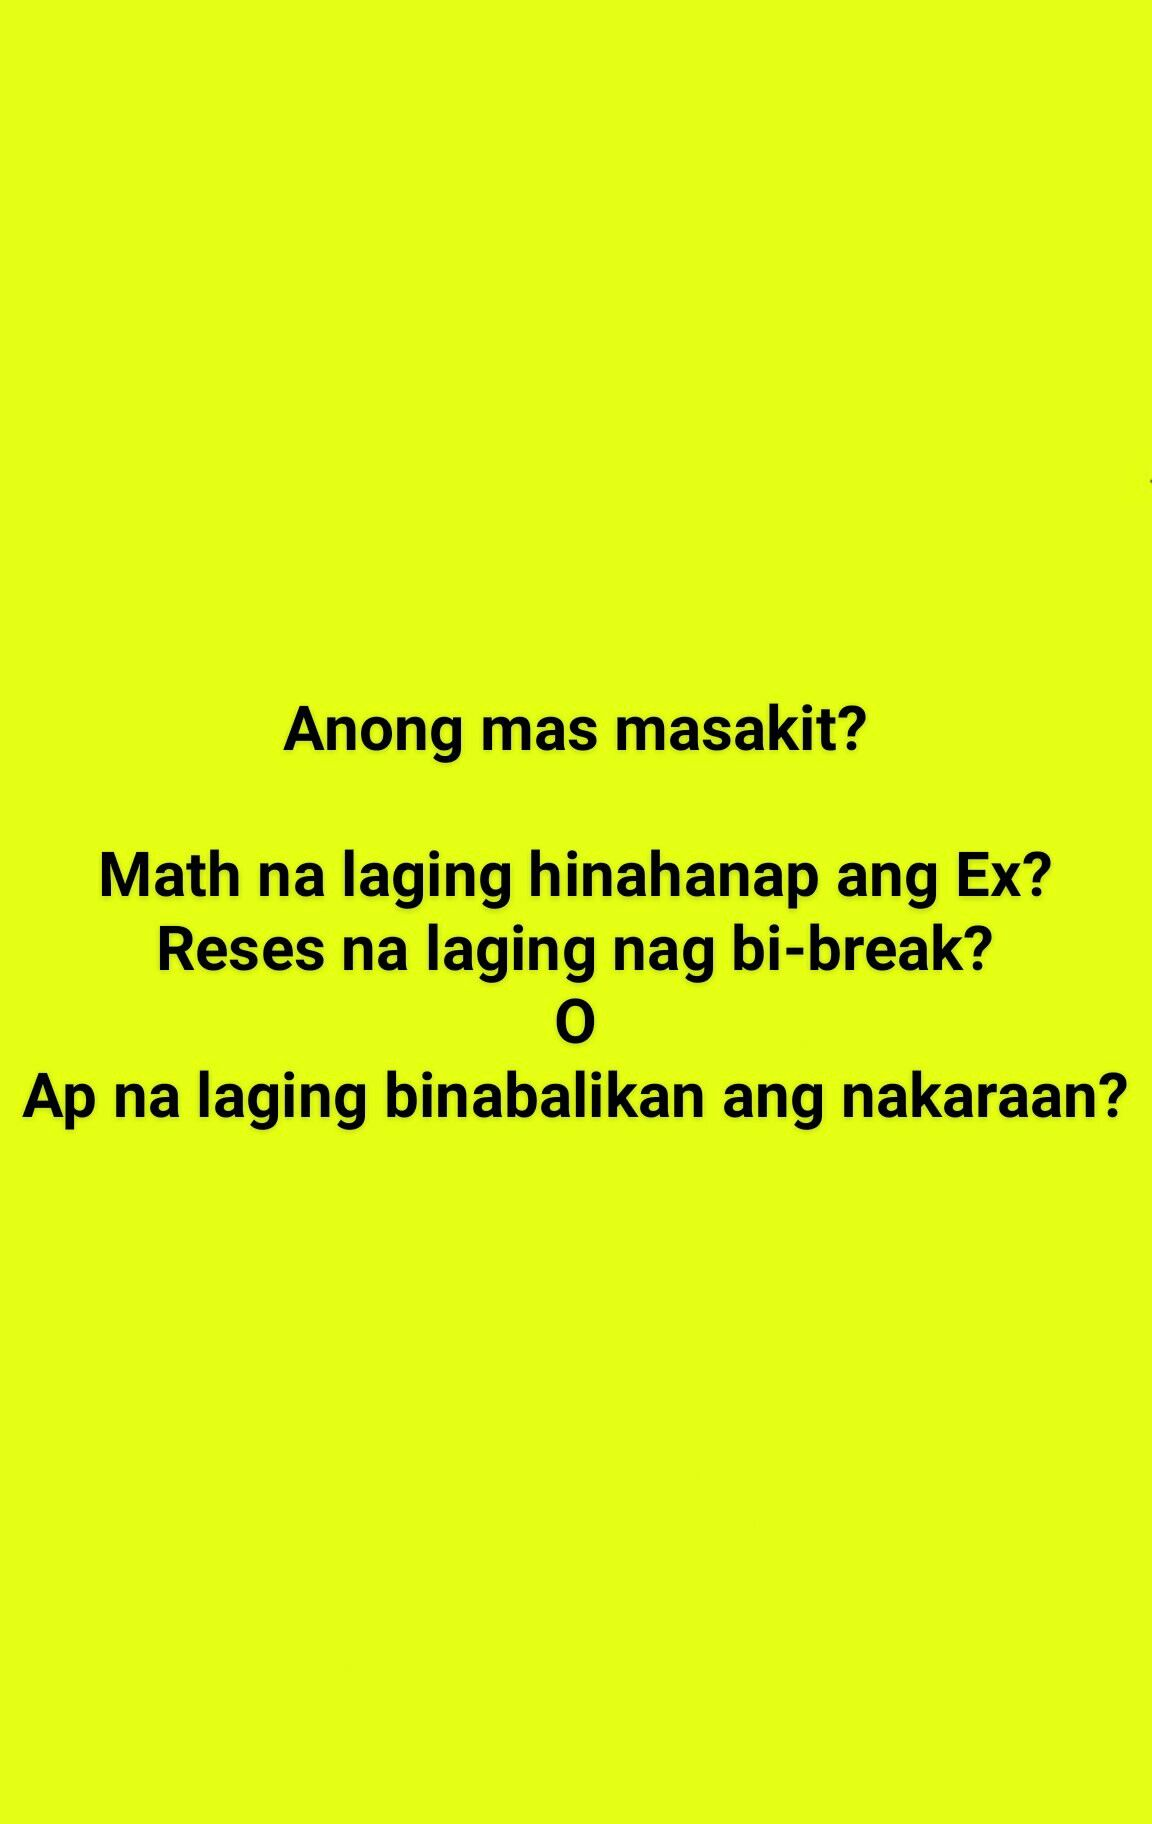 Pin By Kim Aquino On Whoo Got These Lines Tagalog Quotes Hugot Funny Tagalog Quotes Math Jokes